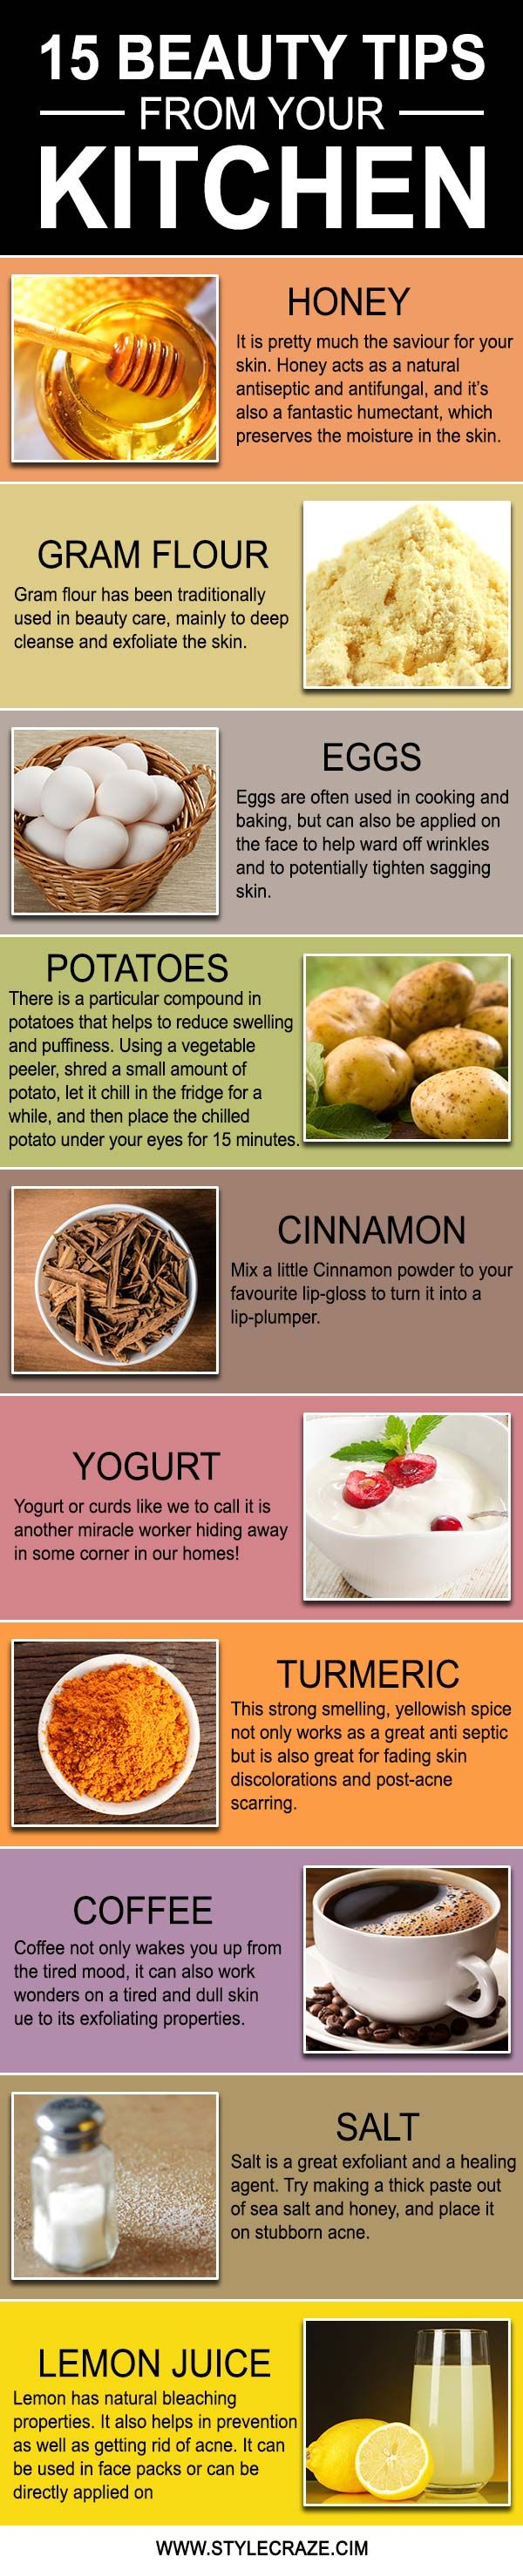 15 Beauty Tips From Your Kitchen  Count Beauty tips for face and Beauty tips